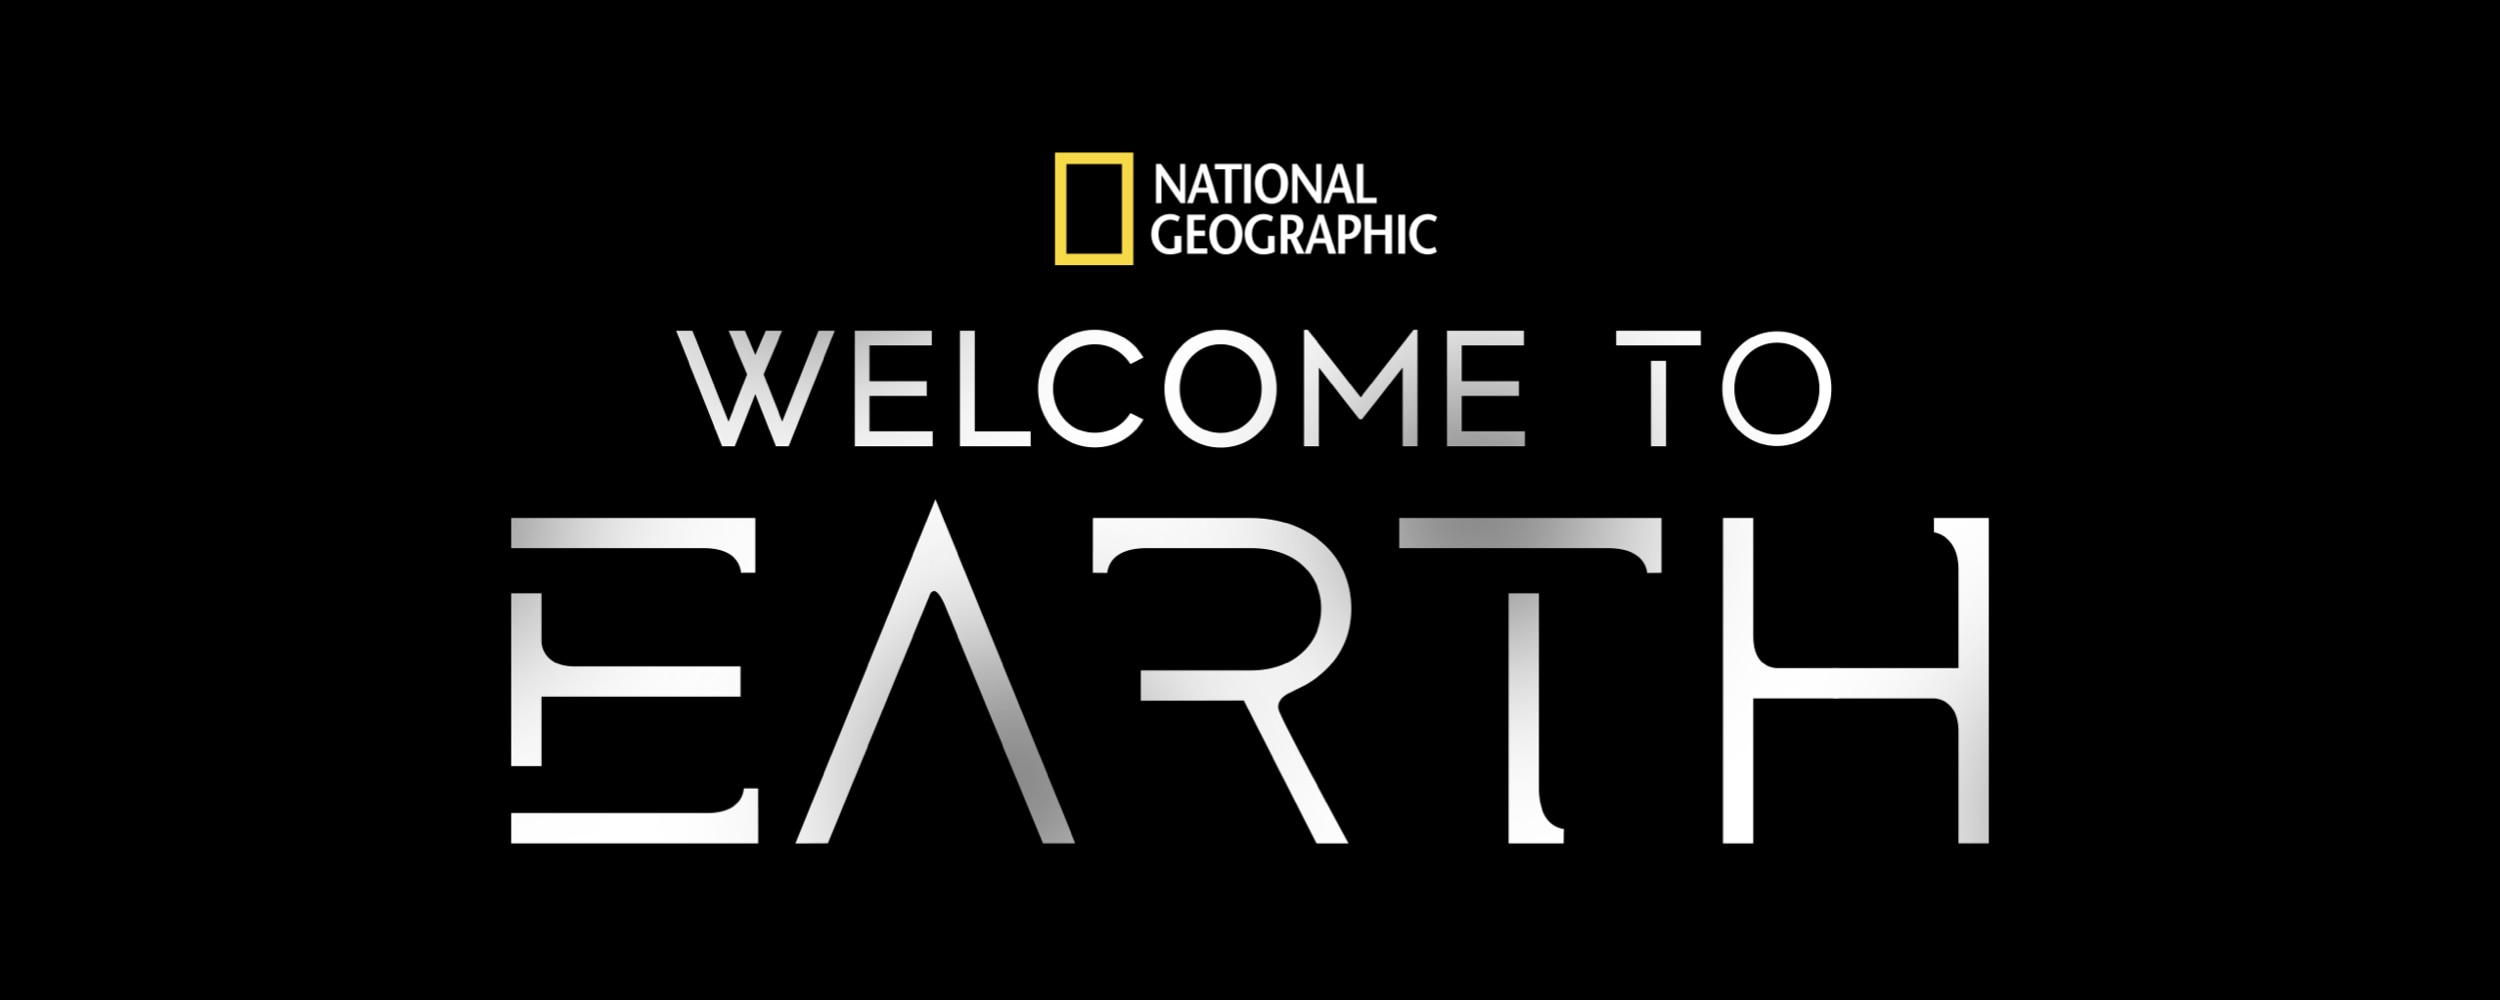 Welcome to Earth Media Kit